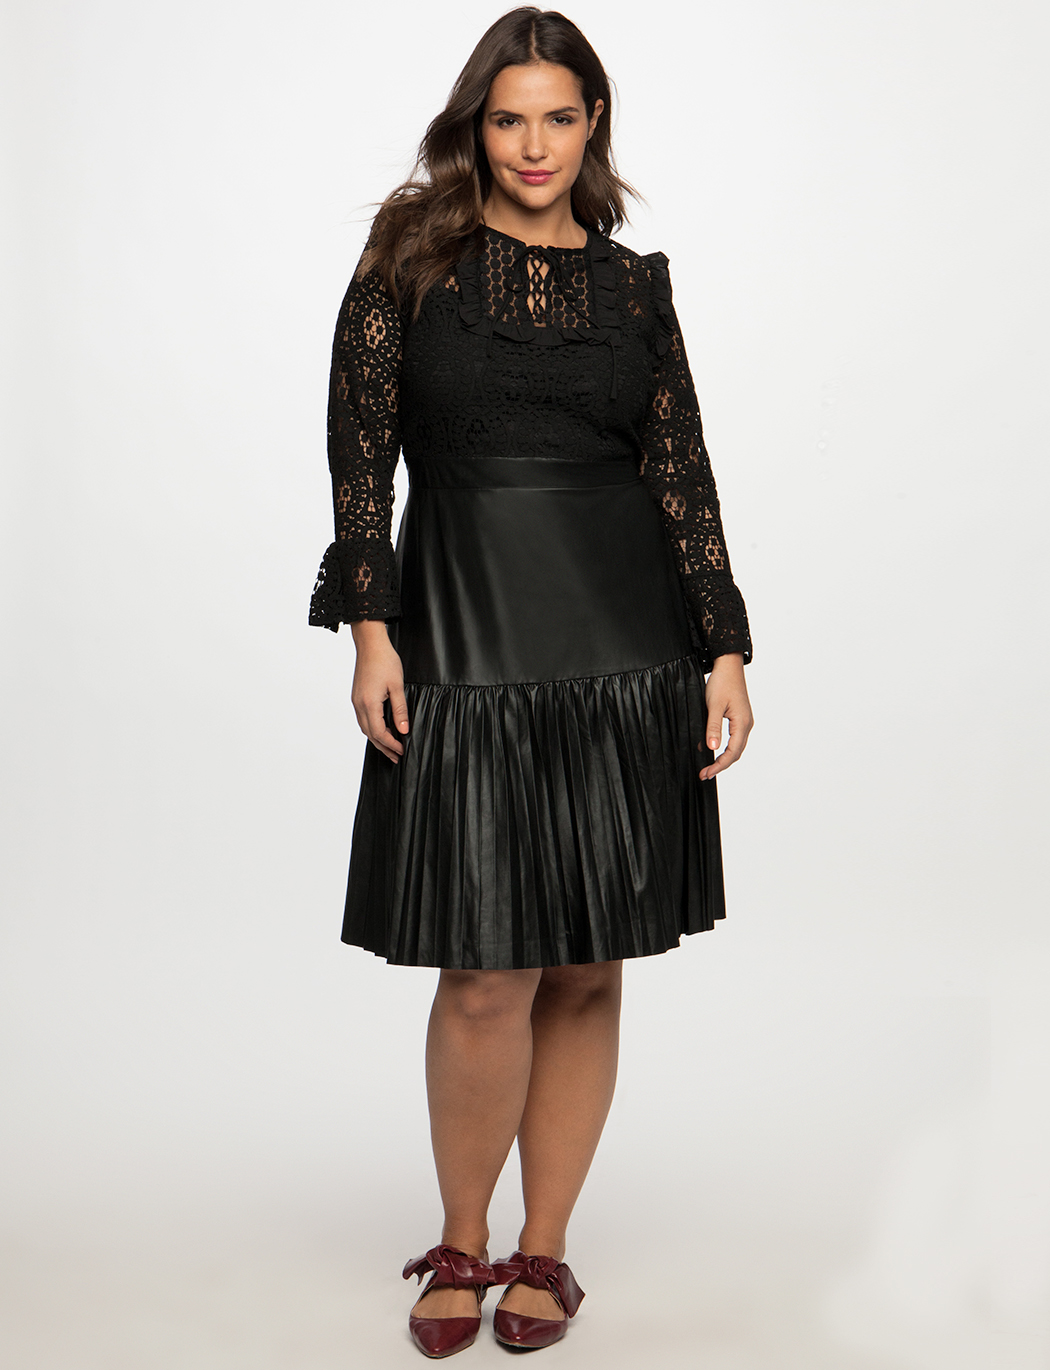 7e63cd34820 Lace Dress with Pleated Faux Leather Skirt